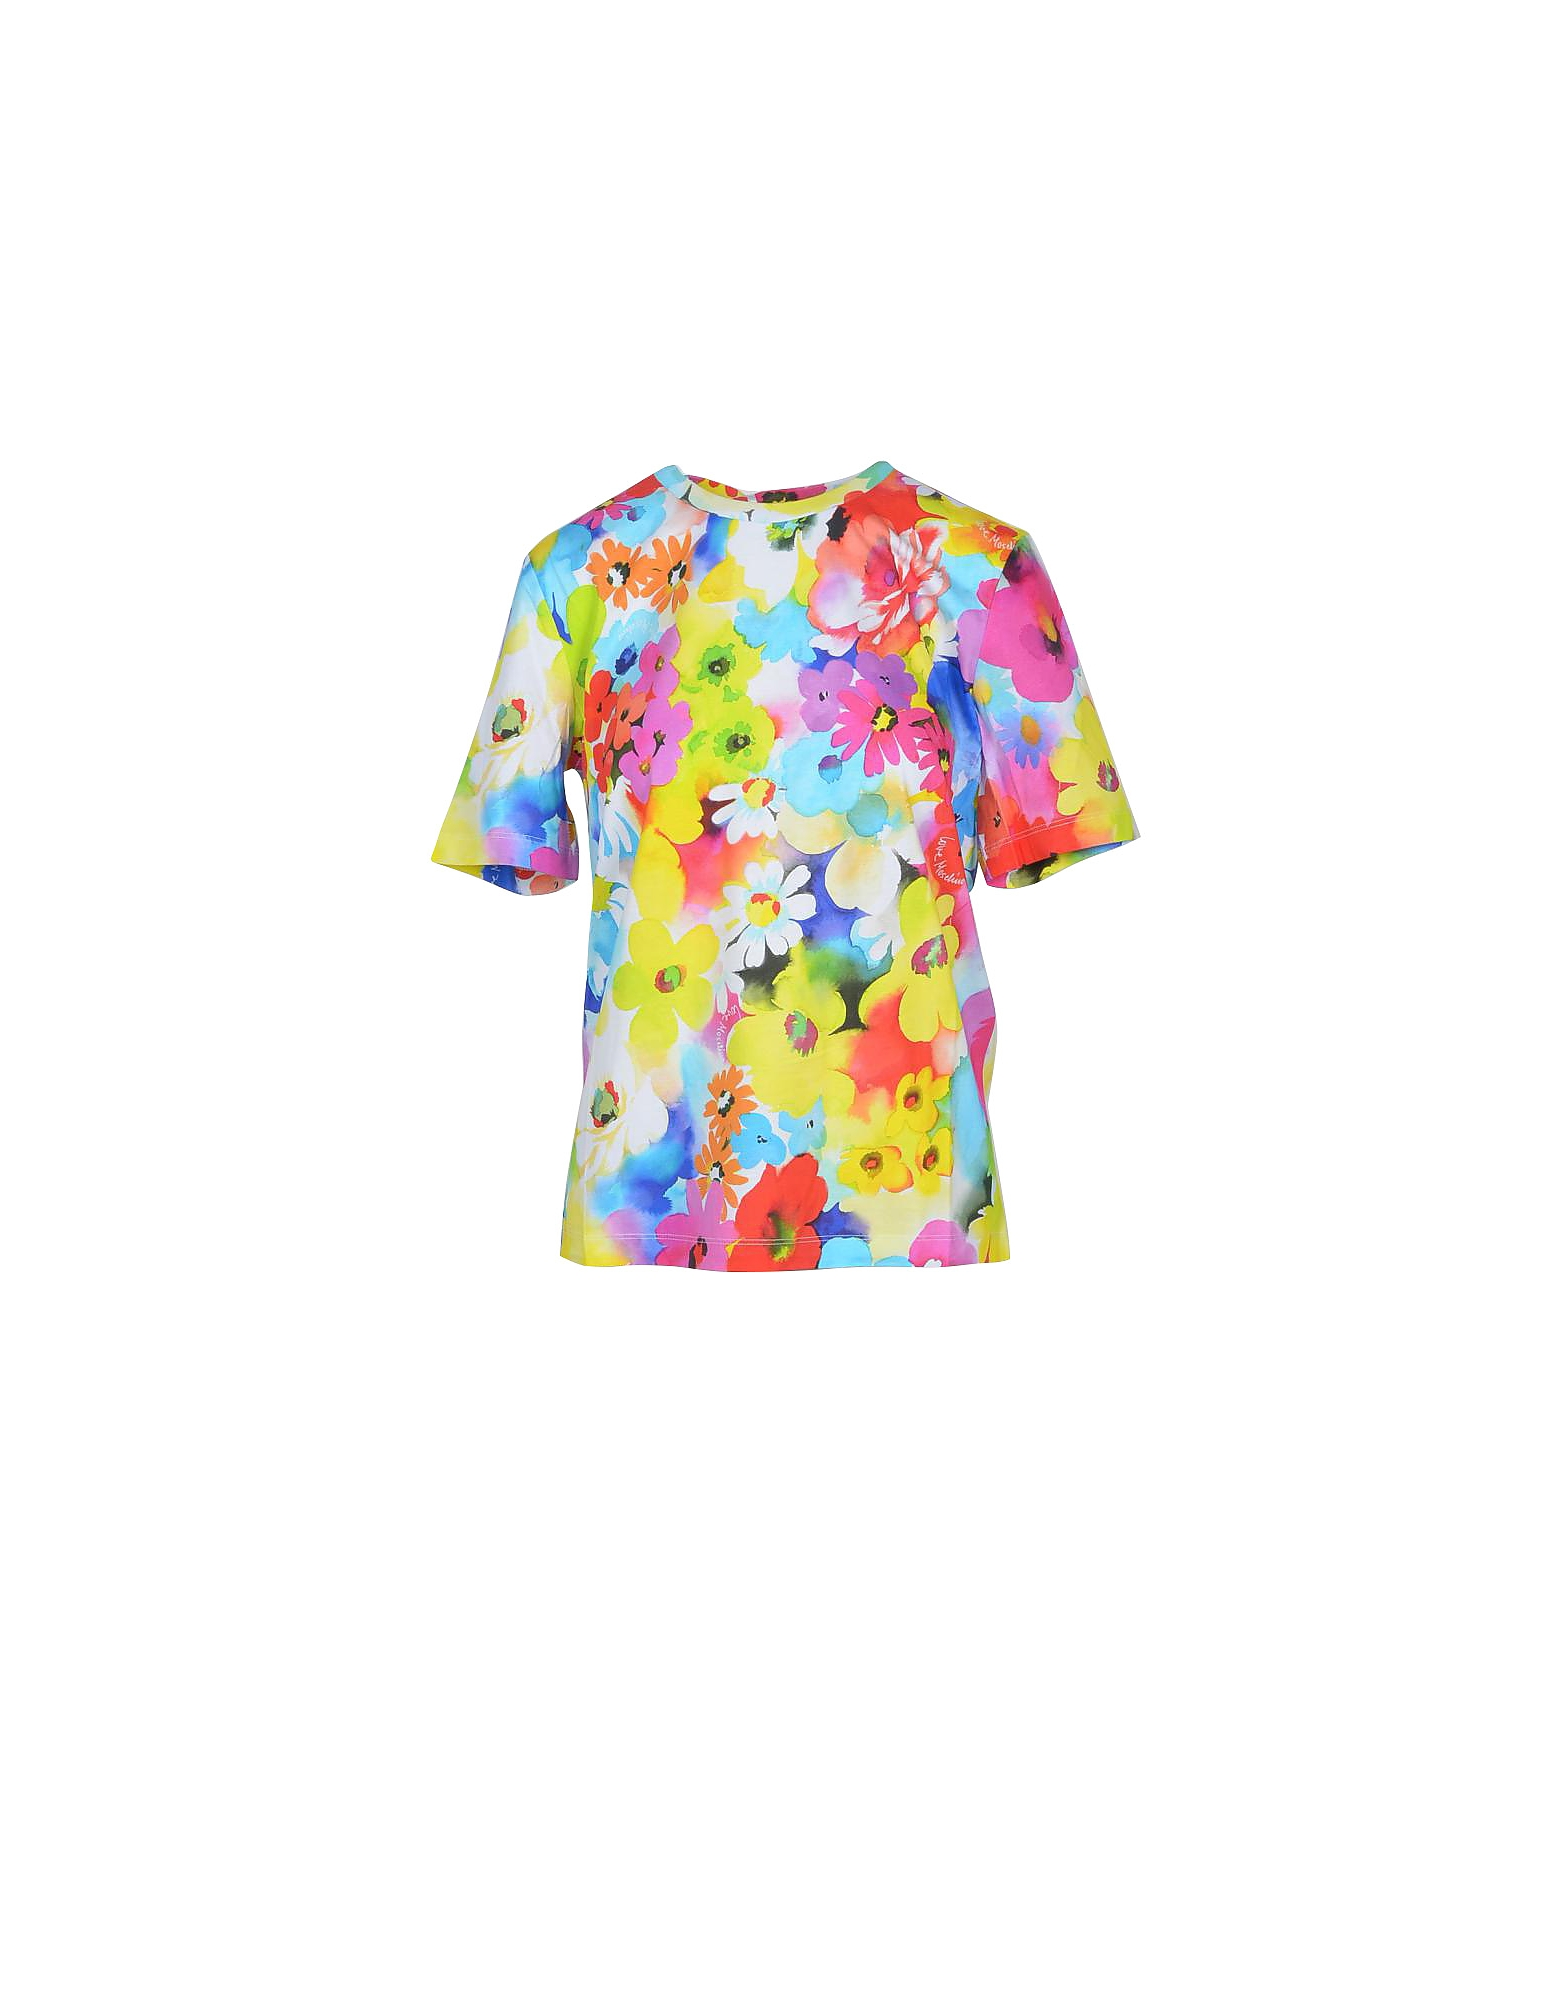 Love Moschino Designer T-Shirts & Tops, Floral Printed Cotton Women's T-Shirt